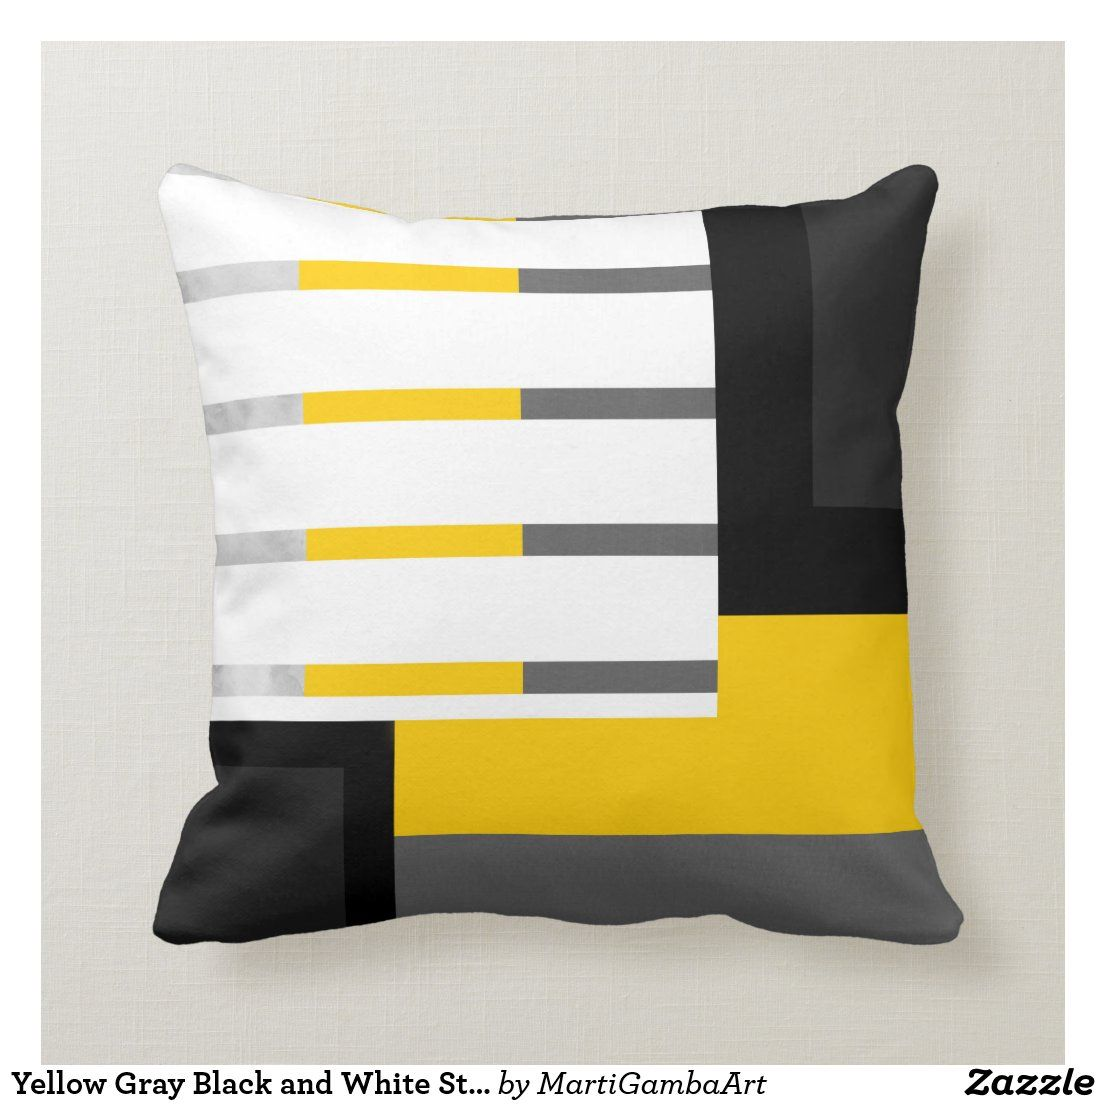 Yellow Gray Black And White Striped Block Throw Pillow Zazzle Com In 2020 Black And White Living Room Yellow Throw Pillows Black Pillows